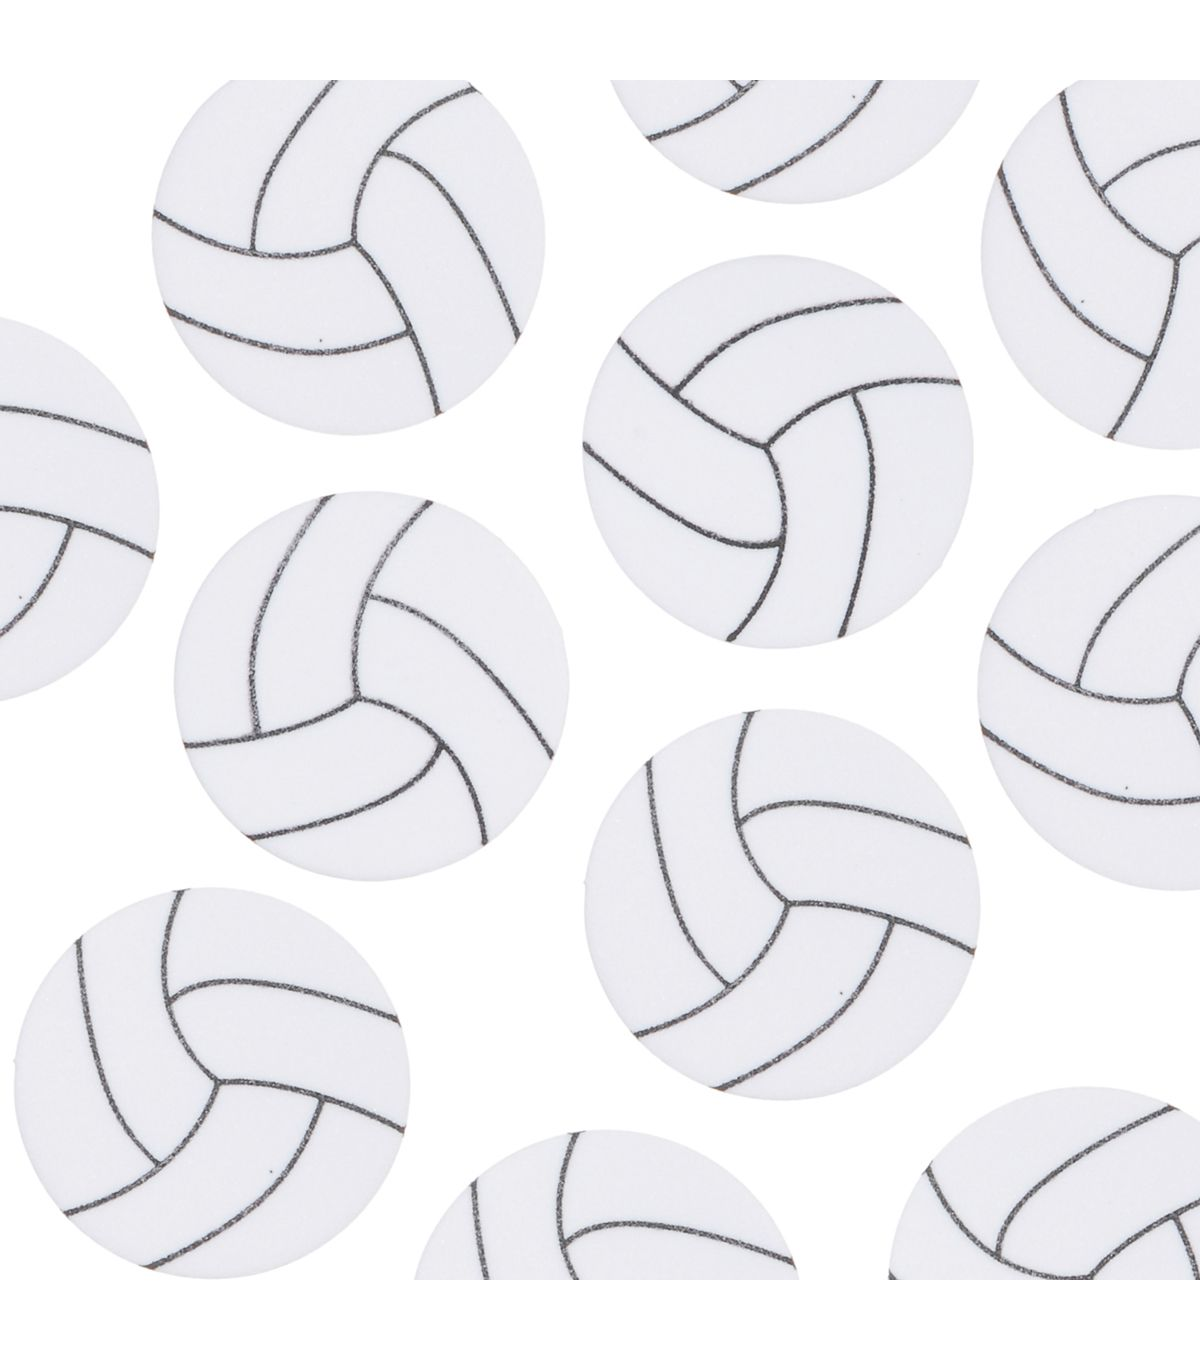 Pin By Brooklyn Bauch On Volleyball In 2020 Volleyball Wallpaper Volleyball Volleyball Designs